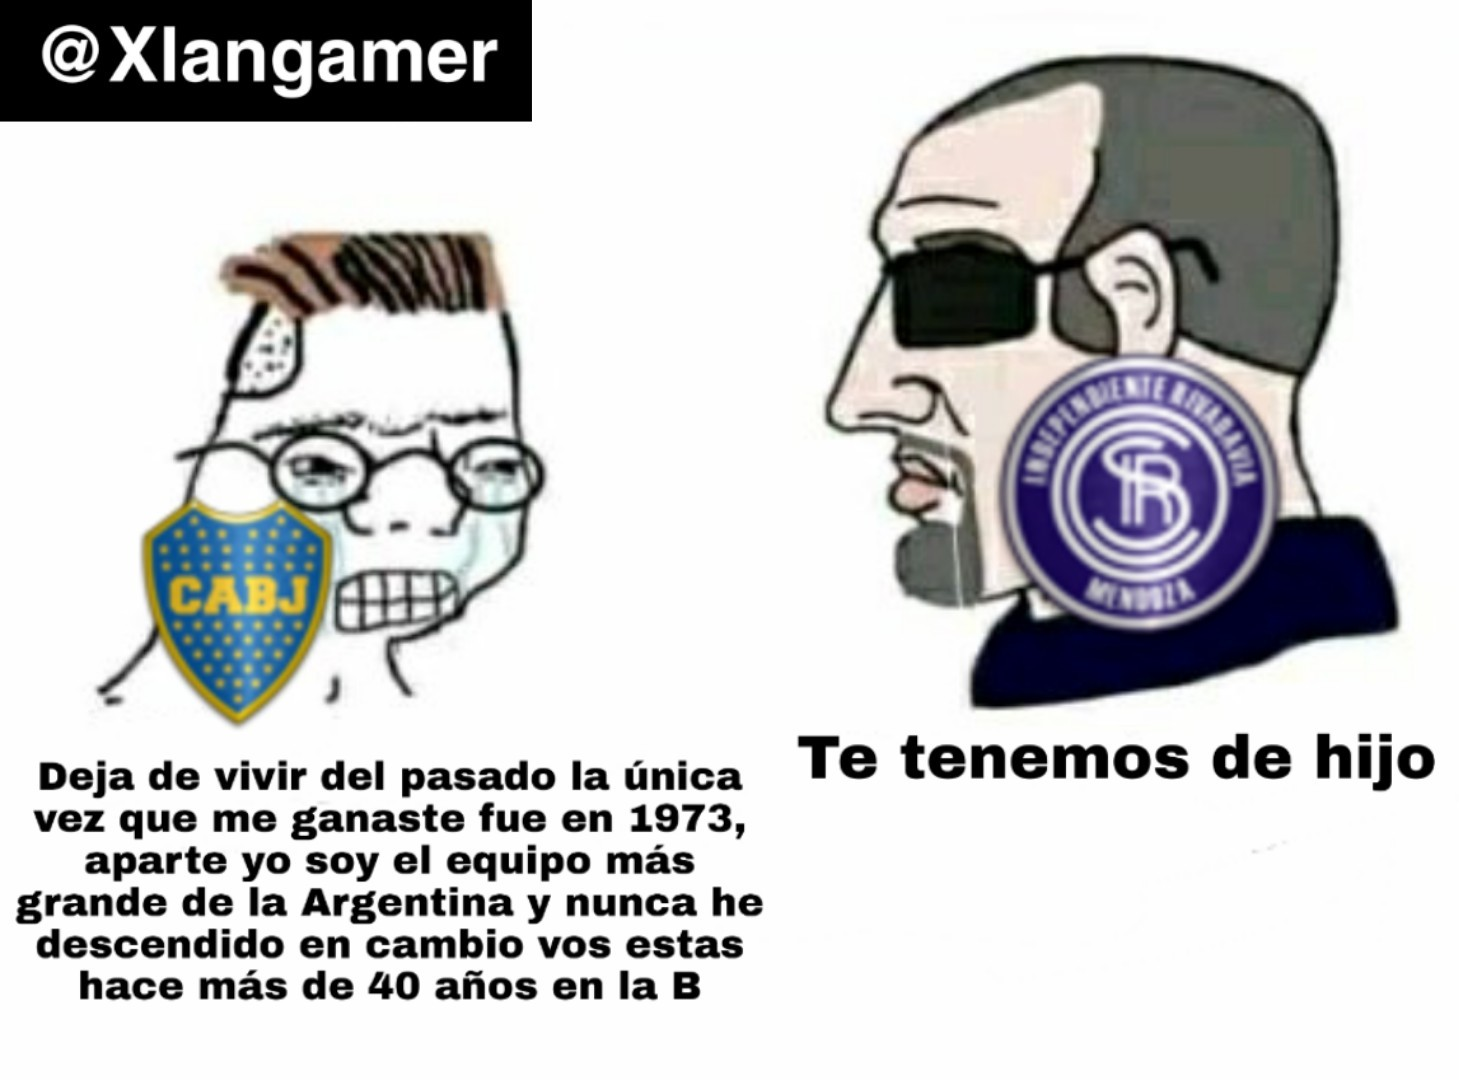 The virgin boca vs the chad independiente de rivadavia - meme